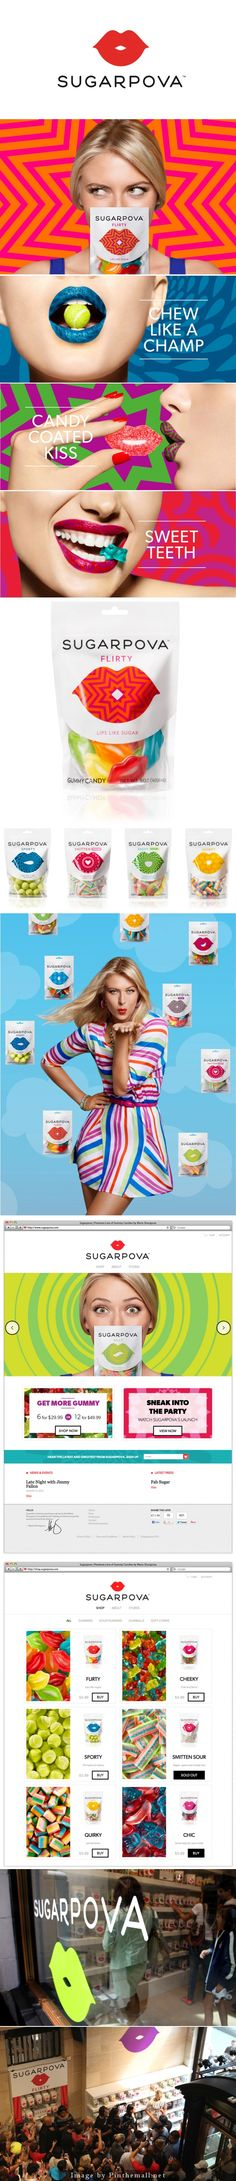 Sugarpova by Red Antler has been a most popular #packaging pin but this is the 1st time I've seen the expanded pin PD